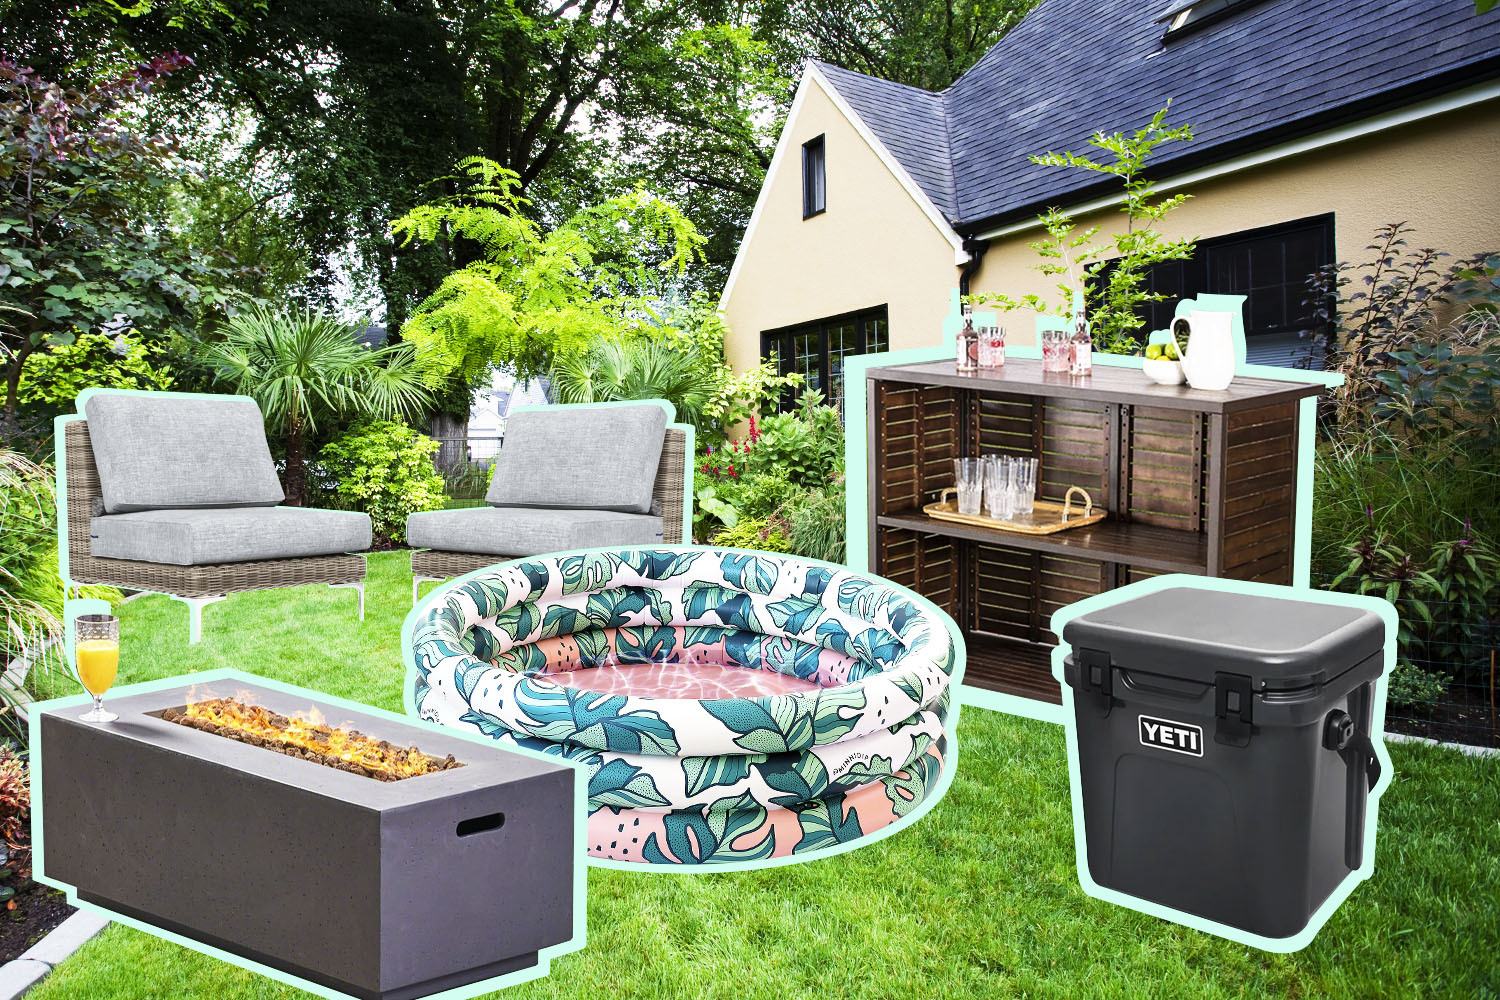 Best backyard products 2020